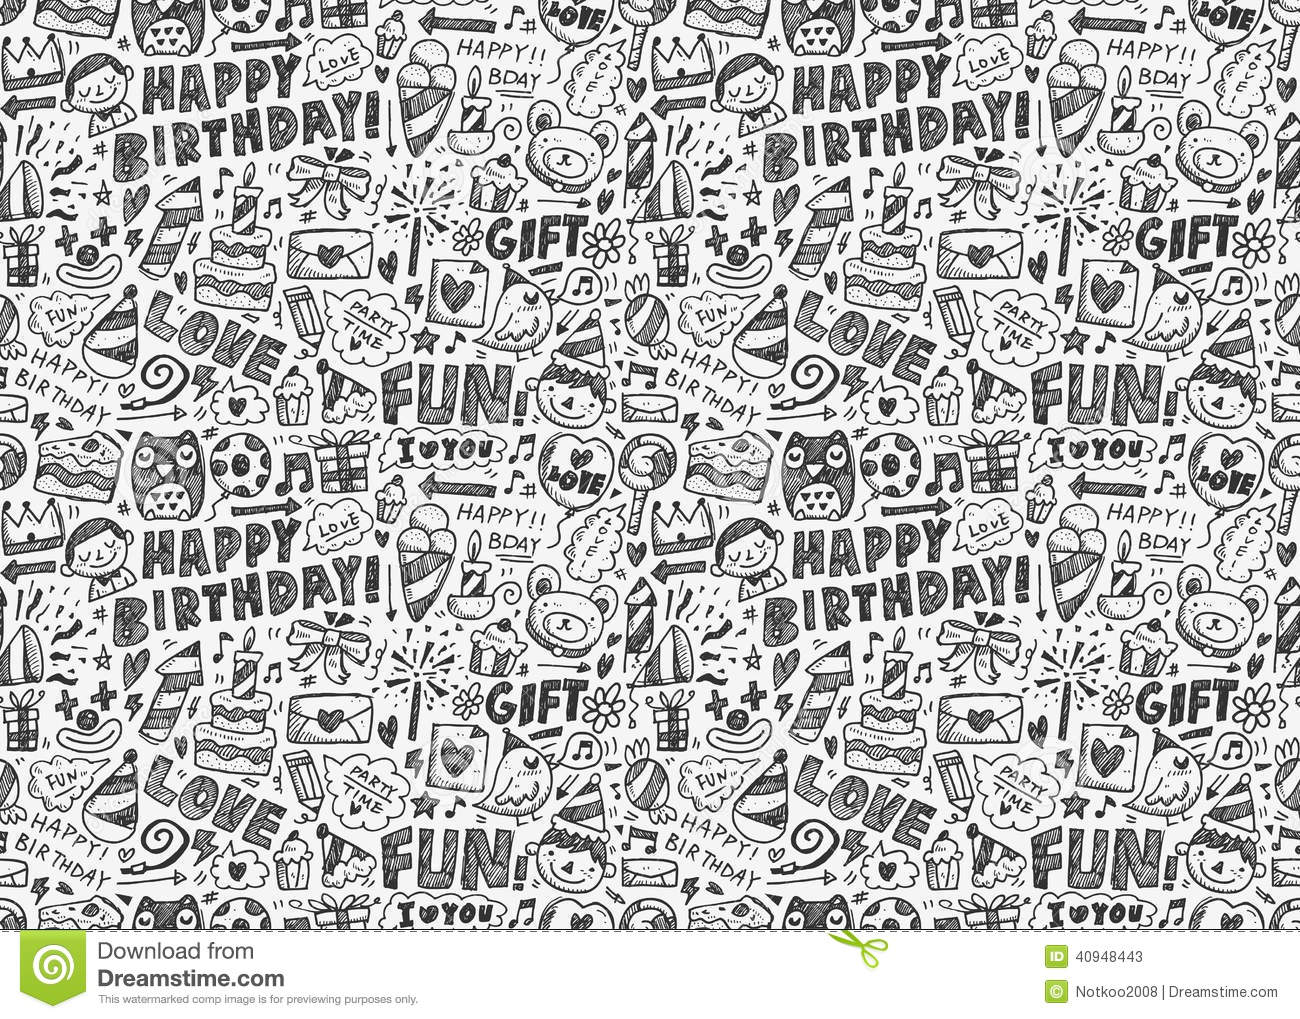 Black Crown Wallpaper Seamless Doodle Birthday Party Pattern Background Stock